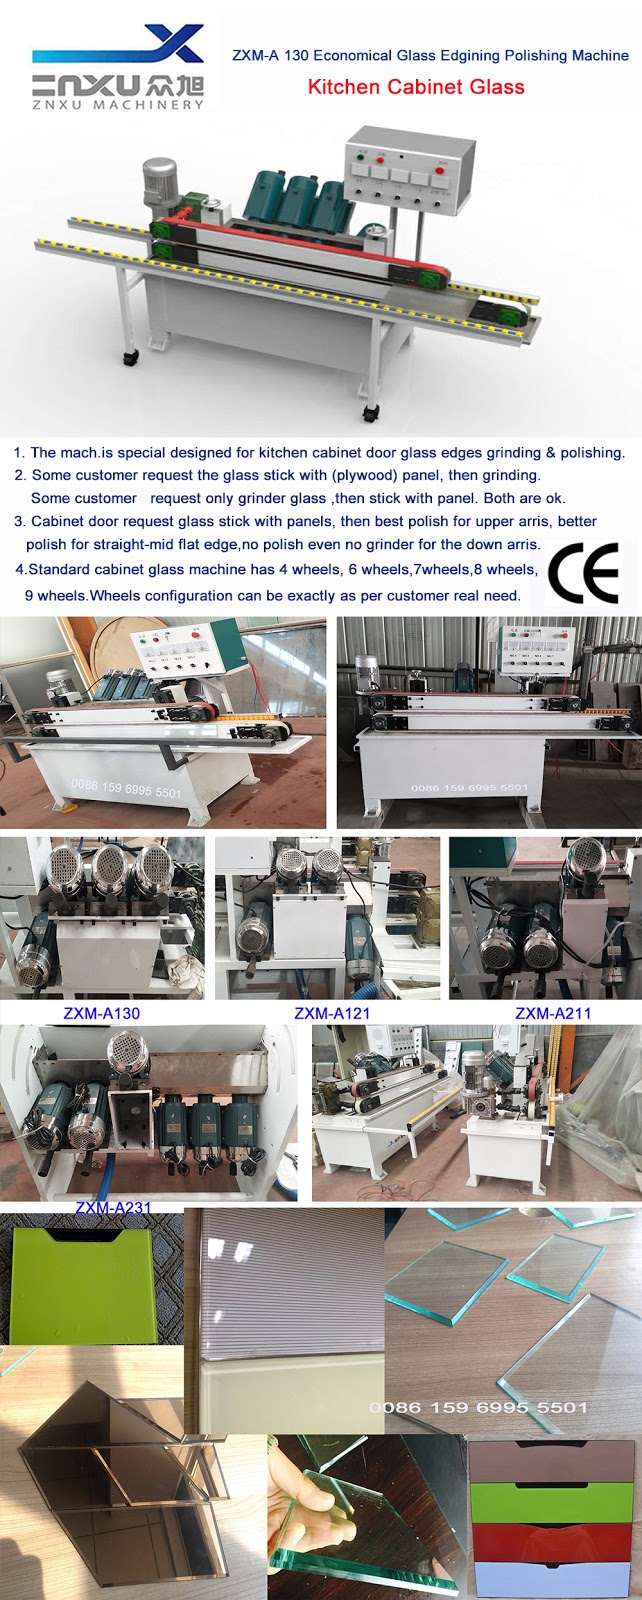 Zxm A Series Economical Glass Edging Polishing Machine For Cabinet